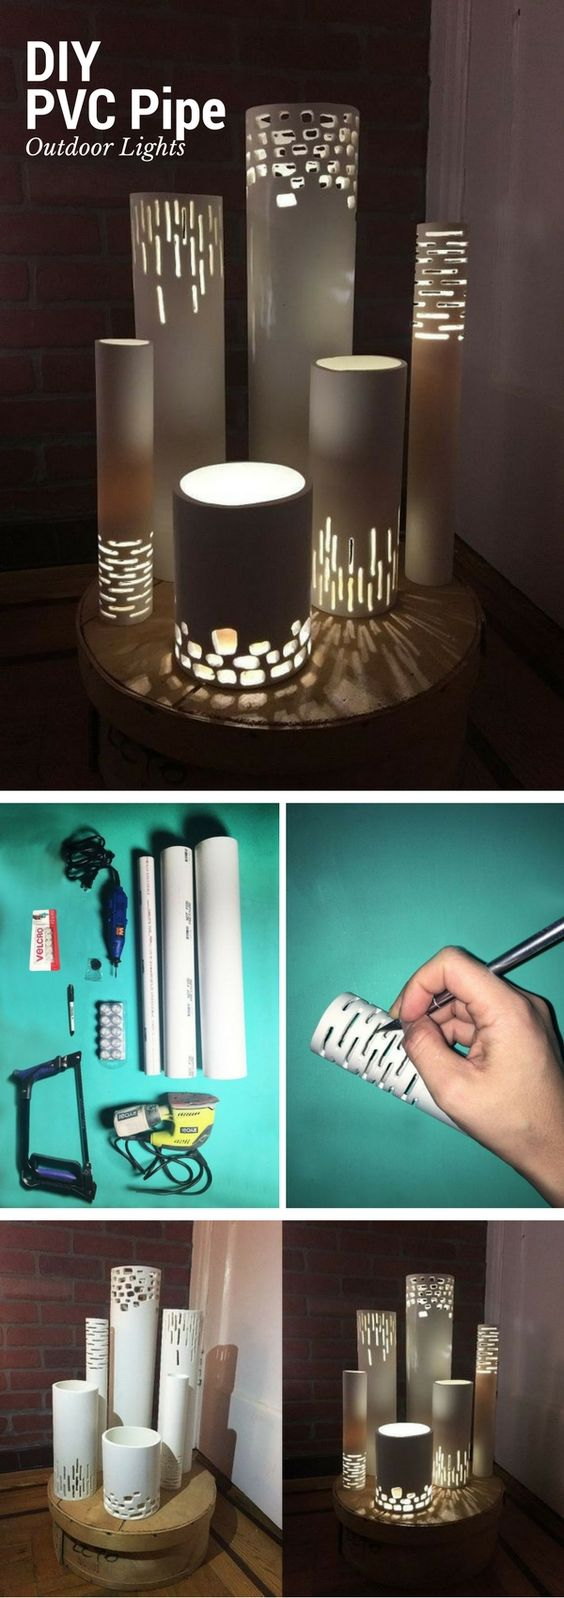 35 cool diy projects using pvc pipe for Pvc pipe crafts